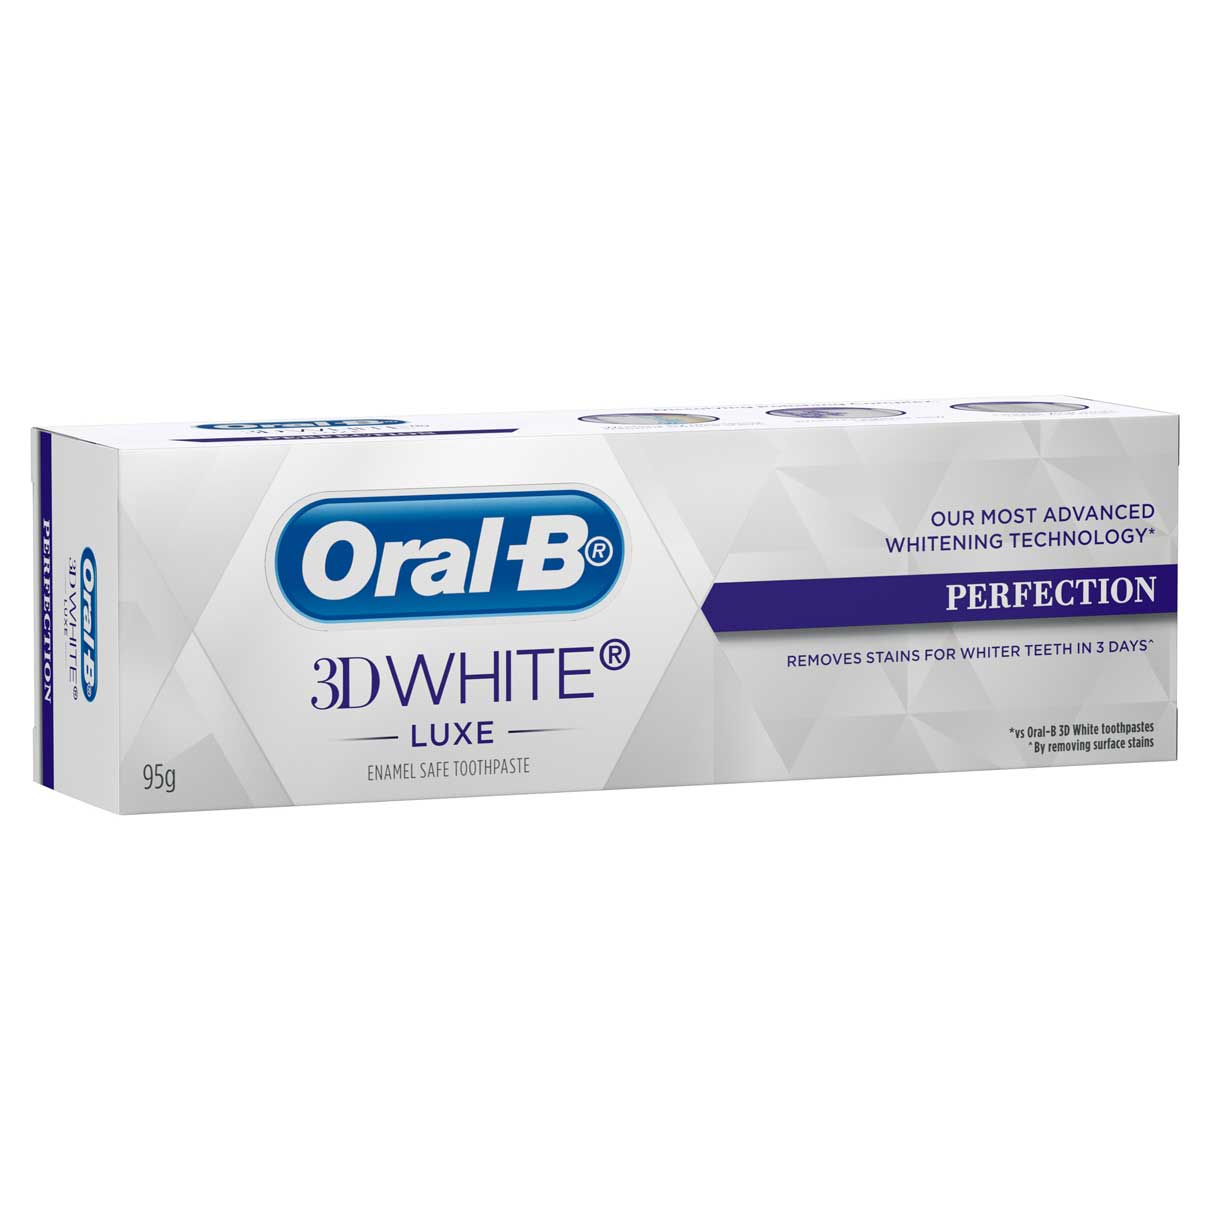 Oral-B 3D White Perfection Carton Horizontal